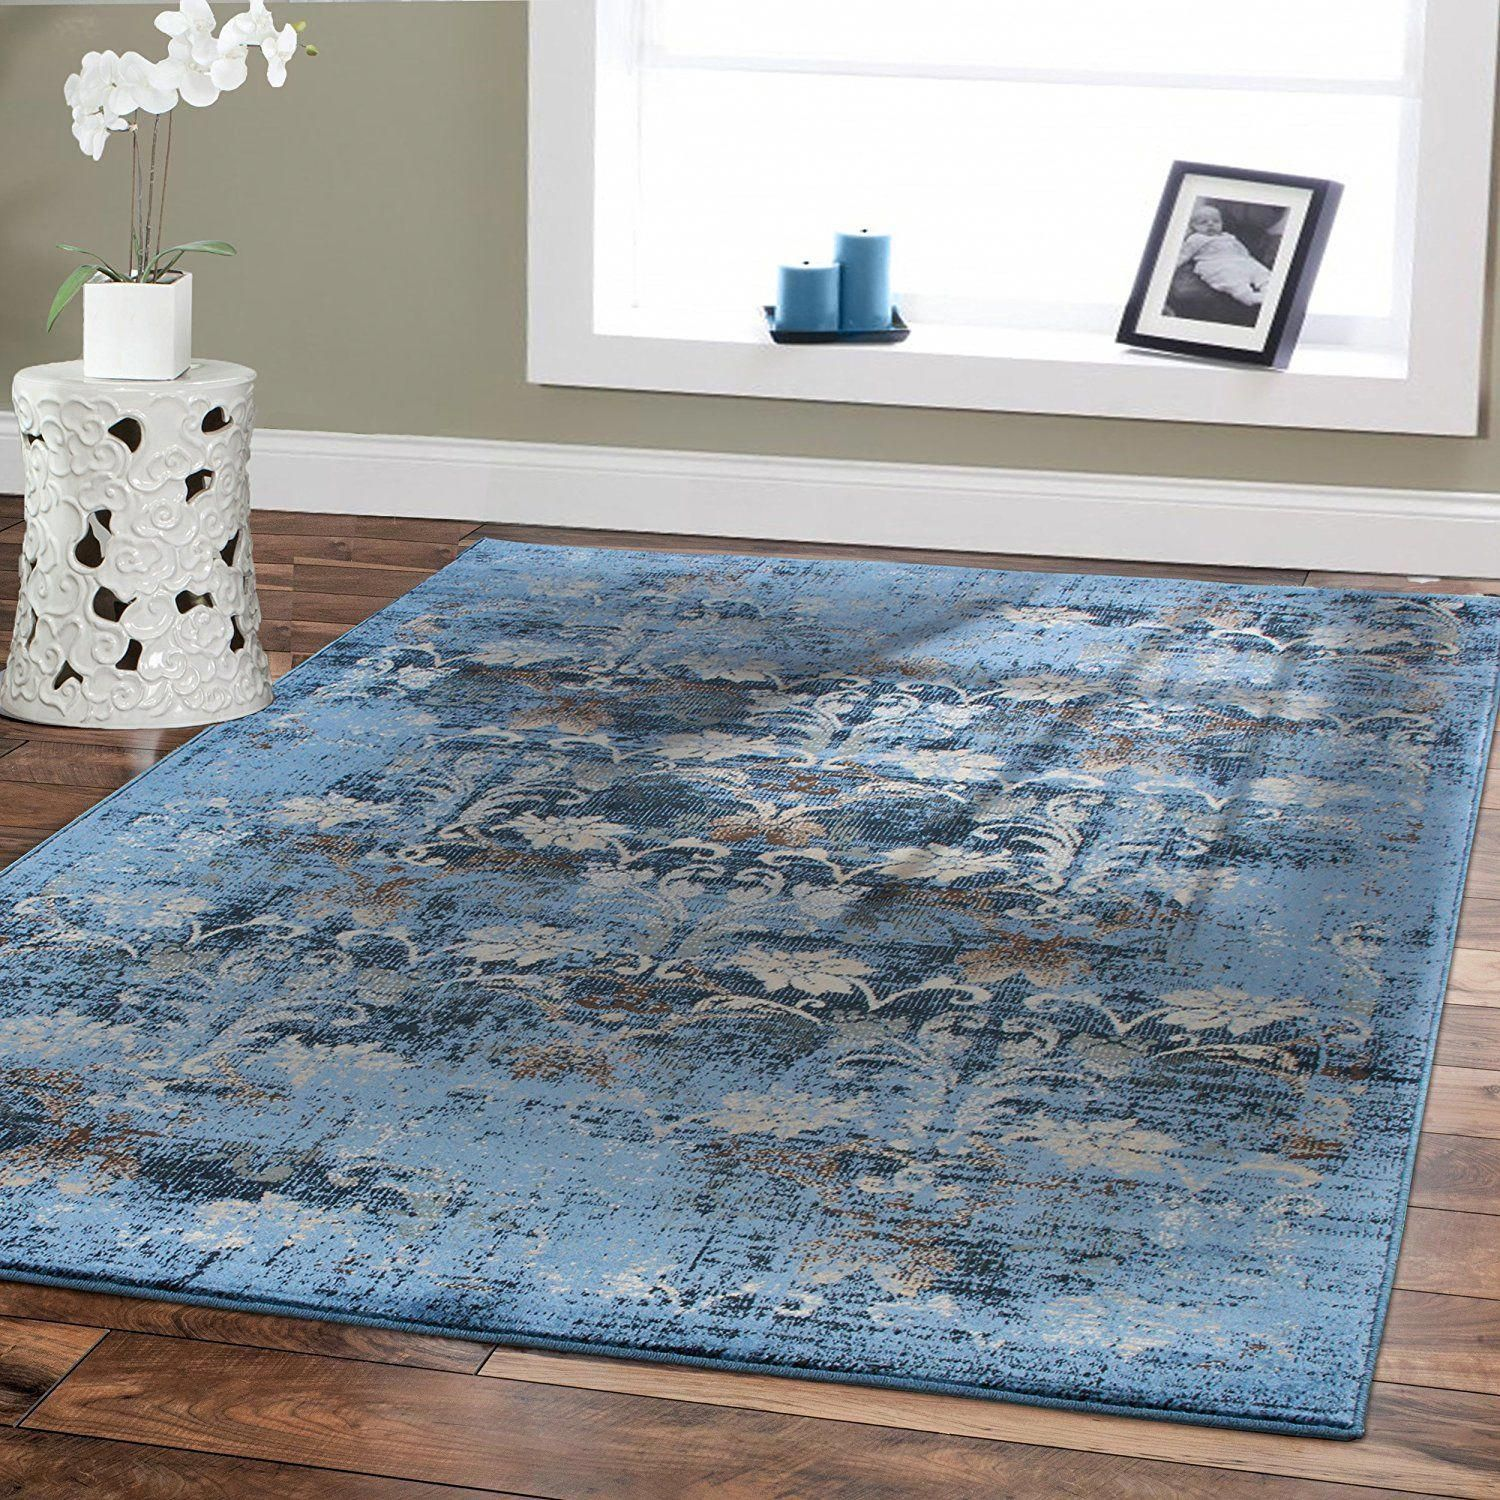 Shabby Chic Cuxhaven Premium Rugs Large 8x11 Rugs For Living Room 8x10 Area Rugs Under